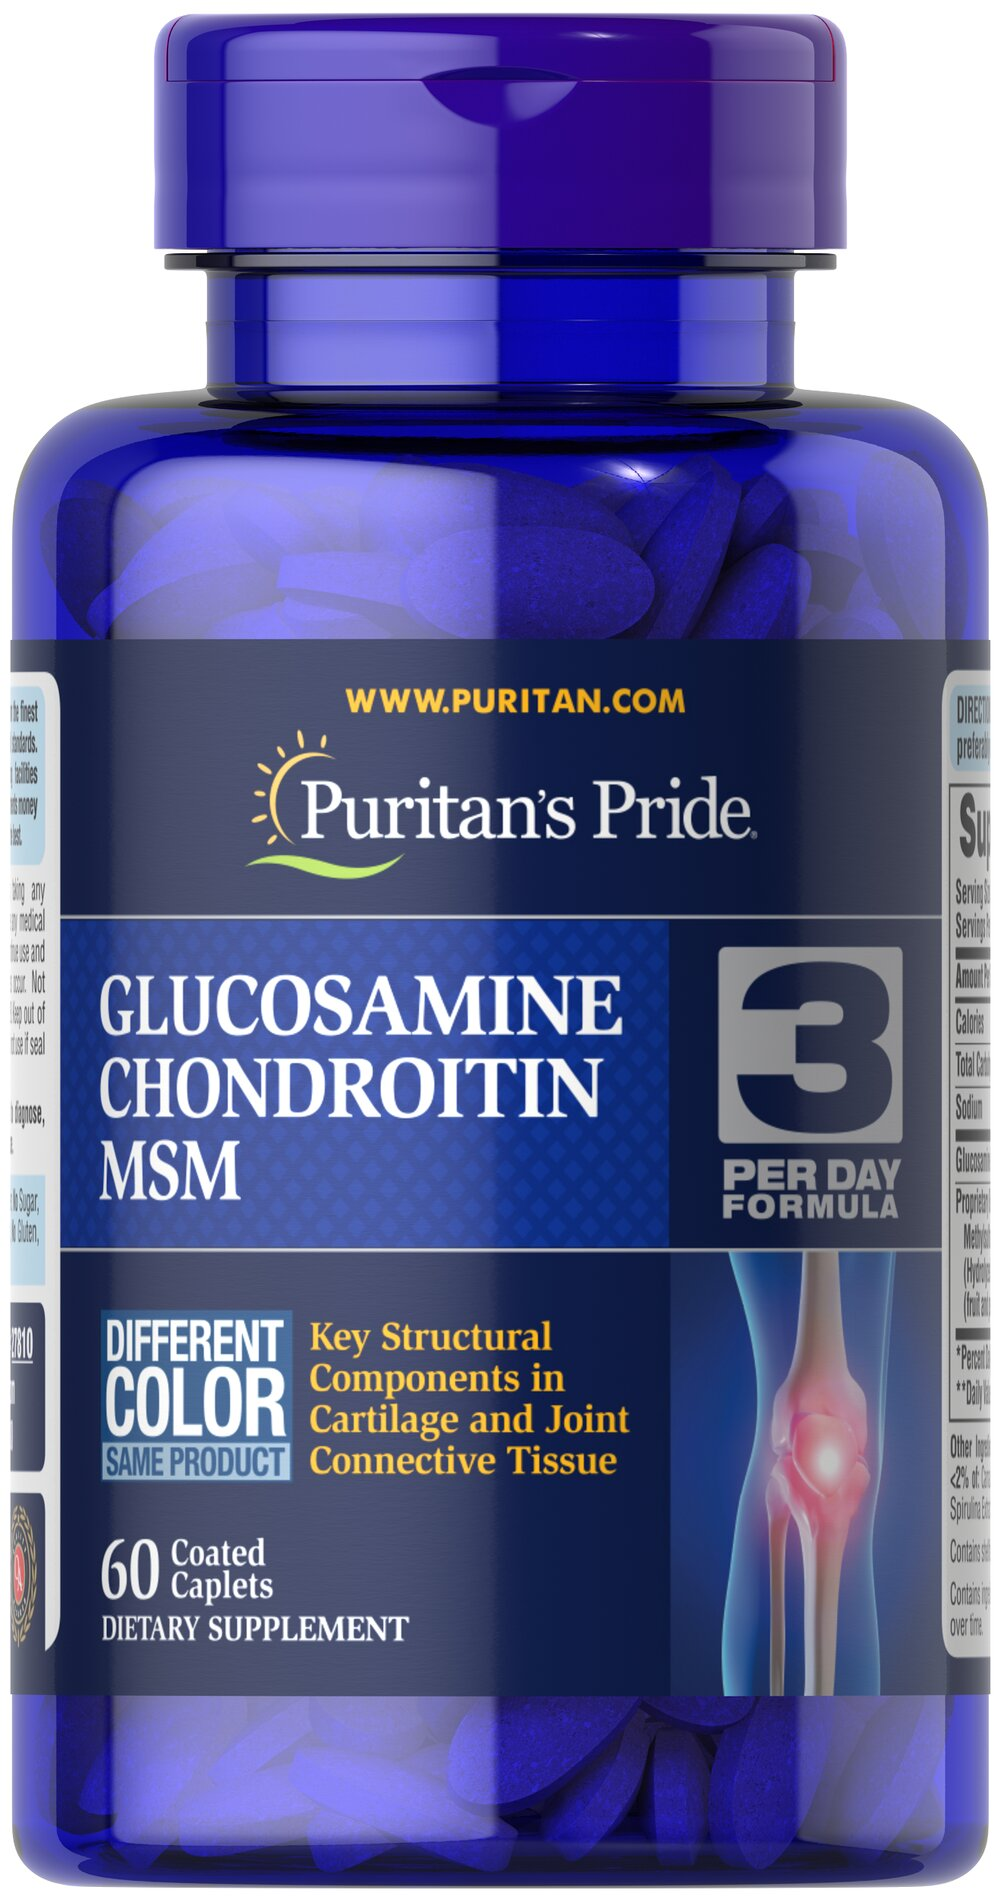 Double Strength Glucosamine, Chondroitin & MSM Joint Soother® <p>Combines the top three structural components found in popular joint support products — Glucosamine, Chondroitin and MSM — with amino and herbal support from Collagen and Boswellia Serrata**</p><p>This high-quality formula delivers 1,500 mg of Glucosamine HCl to help nourish and support cartilage, and helps with occasional joint stress due to exercise or physical activity**</p> 60 Caplets  $11.99